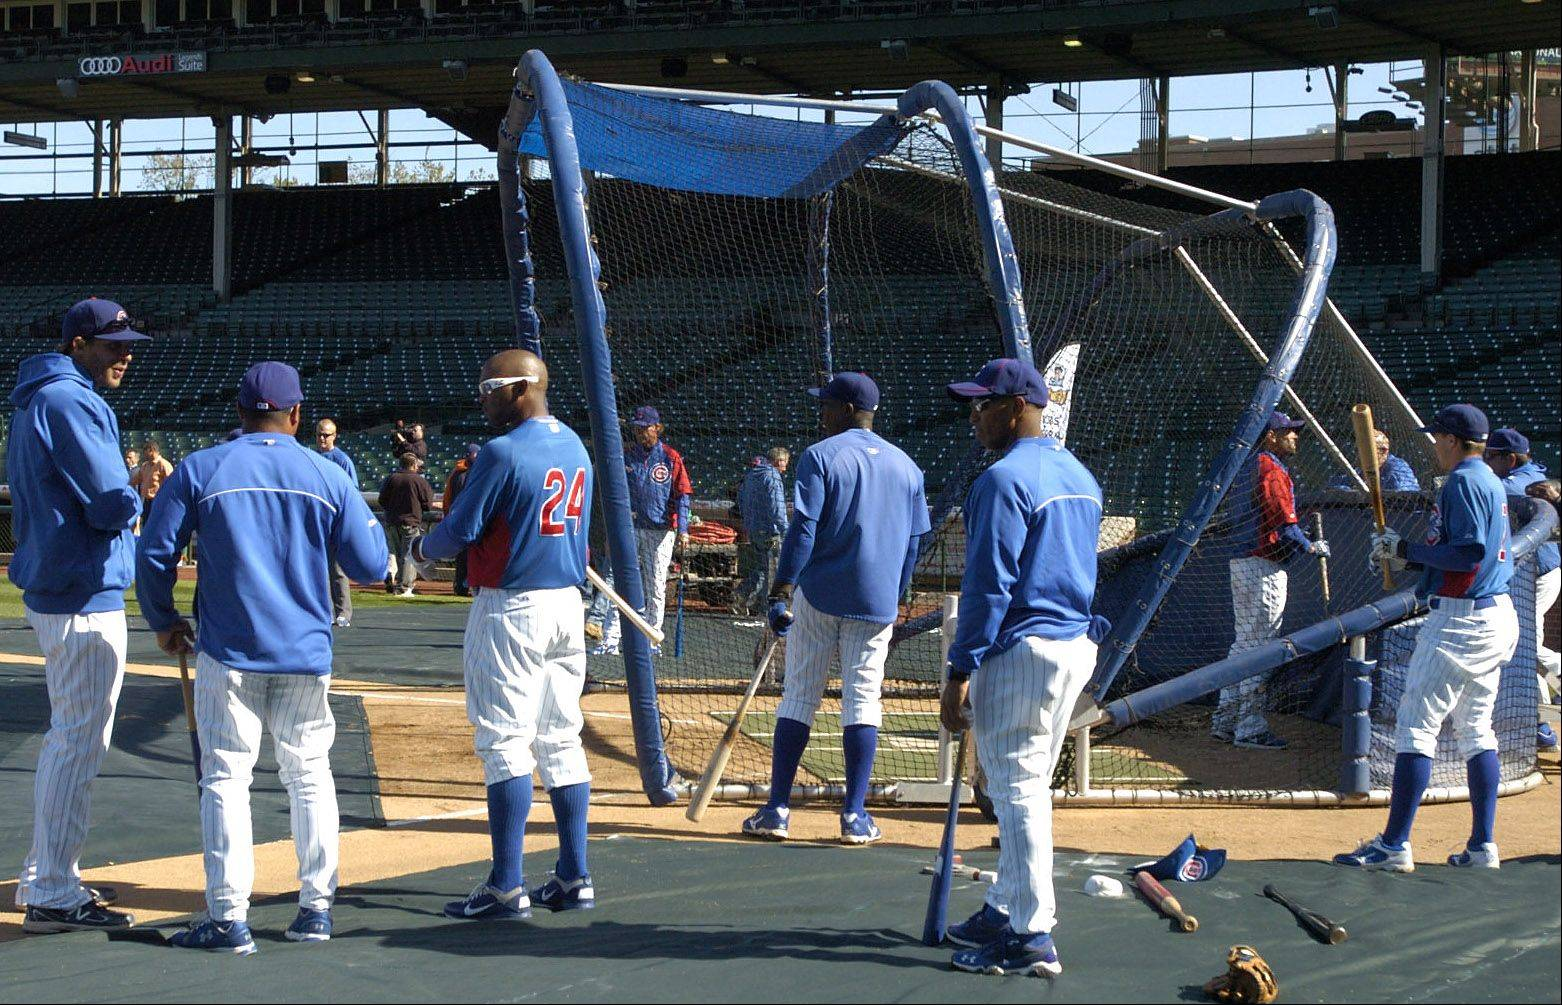 After one final workout Wednesday at Wrigley Field, Cubs players will start the MLB season Thursday afternoon with their home opener against the Washington Nationals.